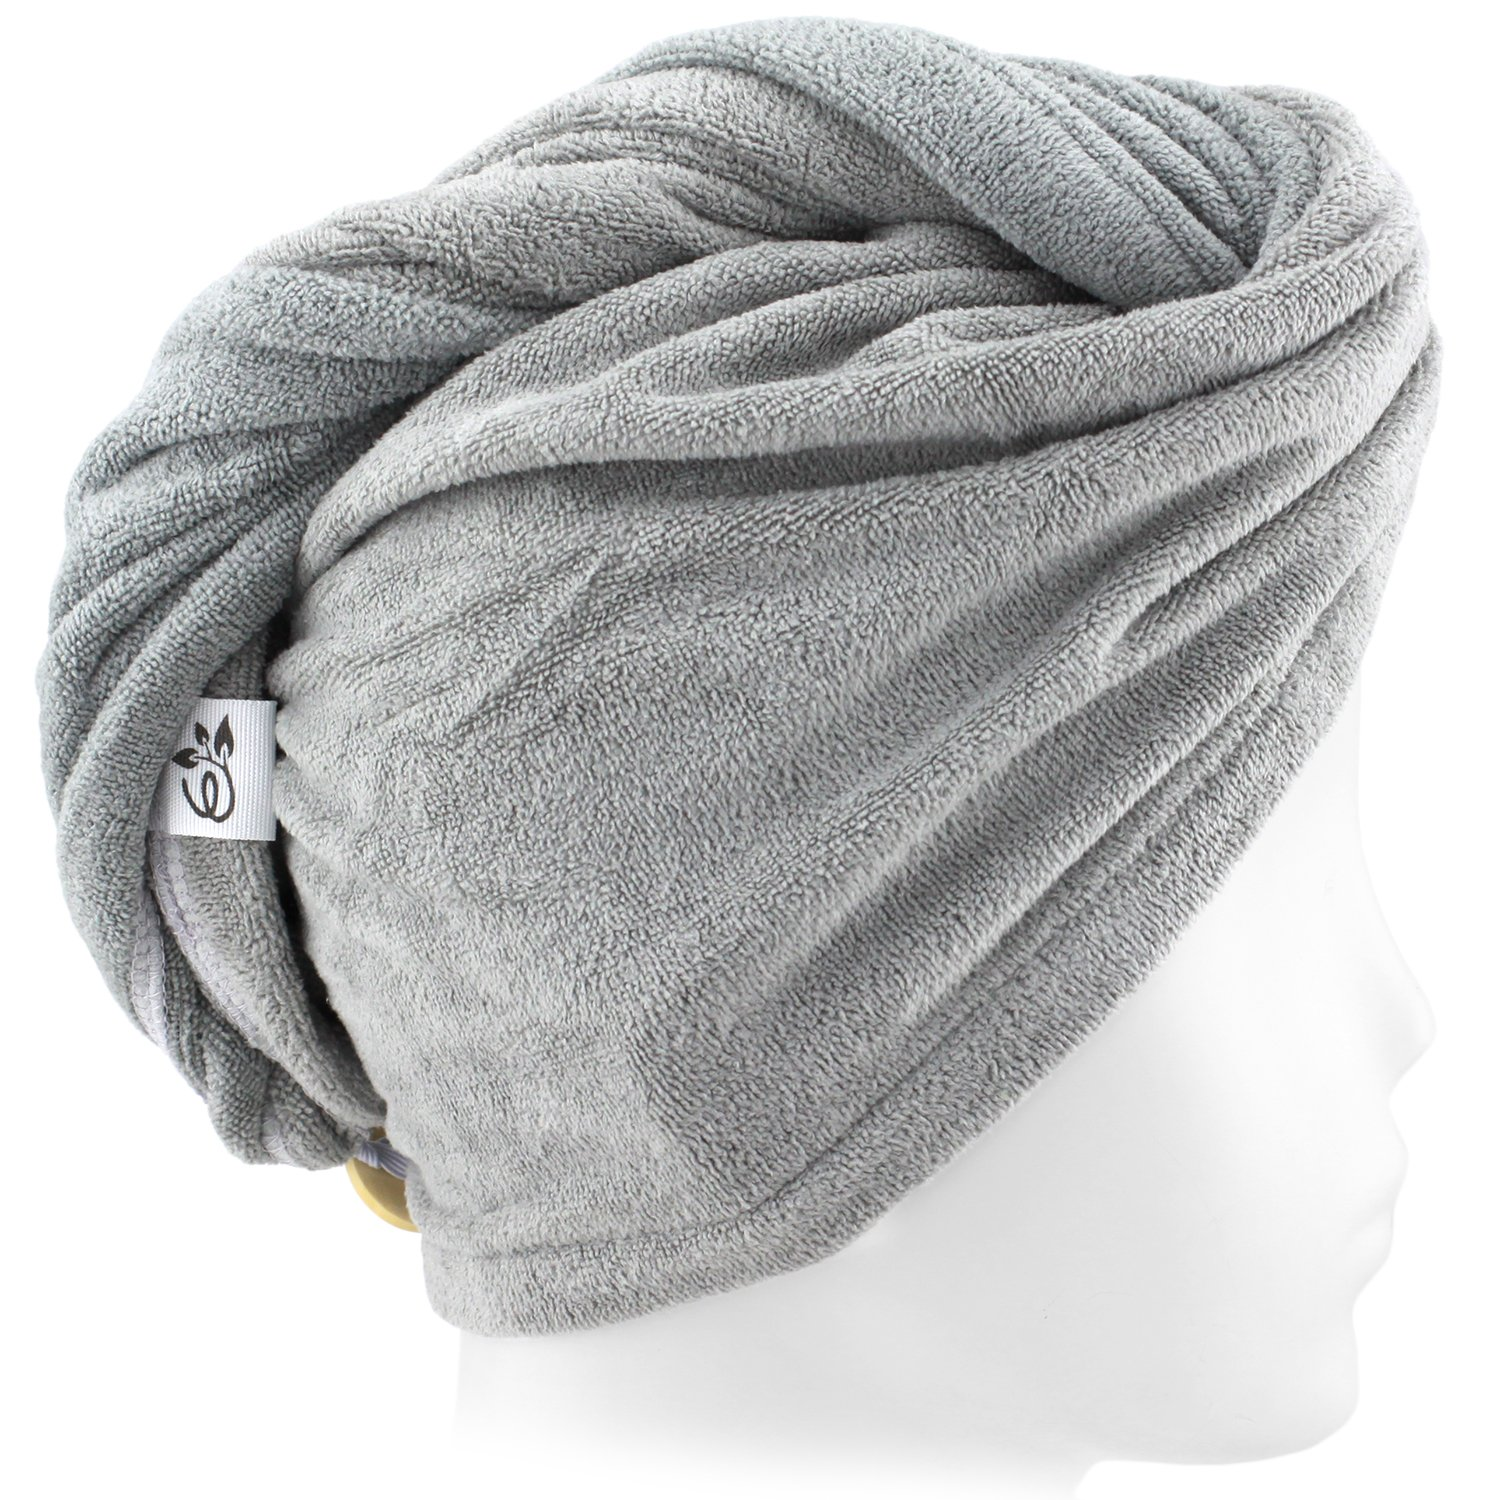 Evolatree Microfiber Hair Towel Wrap - Quick Magic Hair Dry Hat - Anti Frizz Products For Curly Hair Drying Towels - Neutral Gray by Evolatree (Image #9)